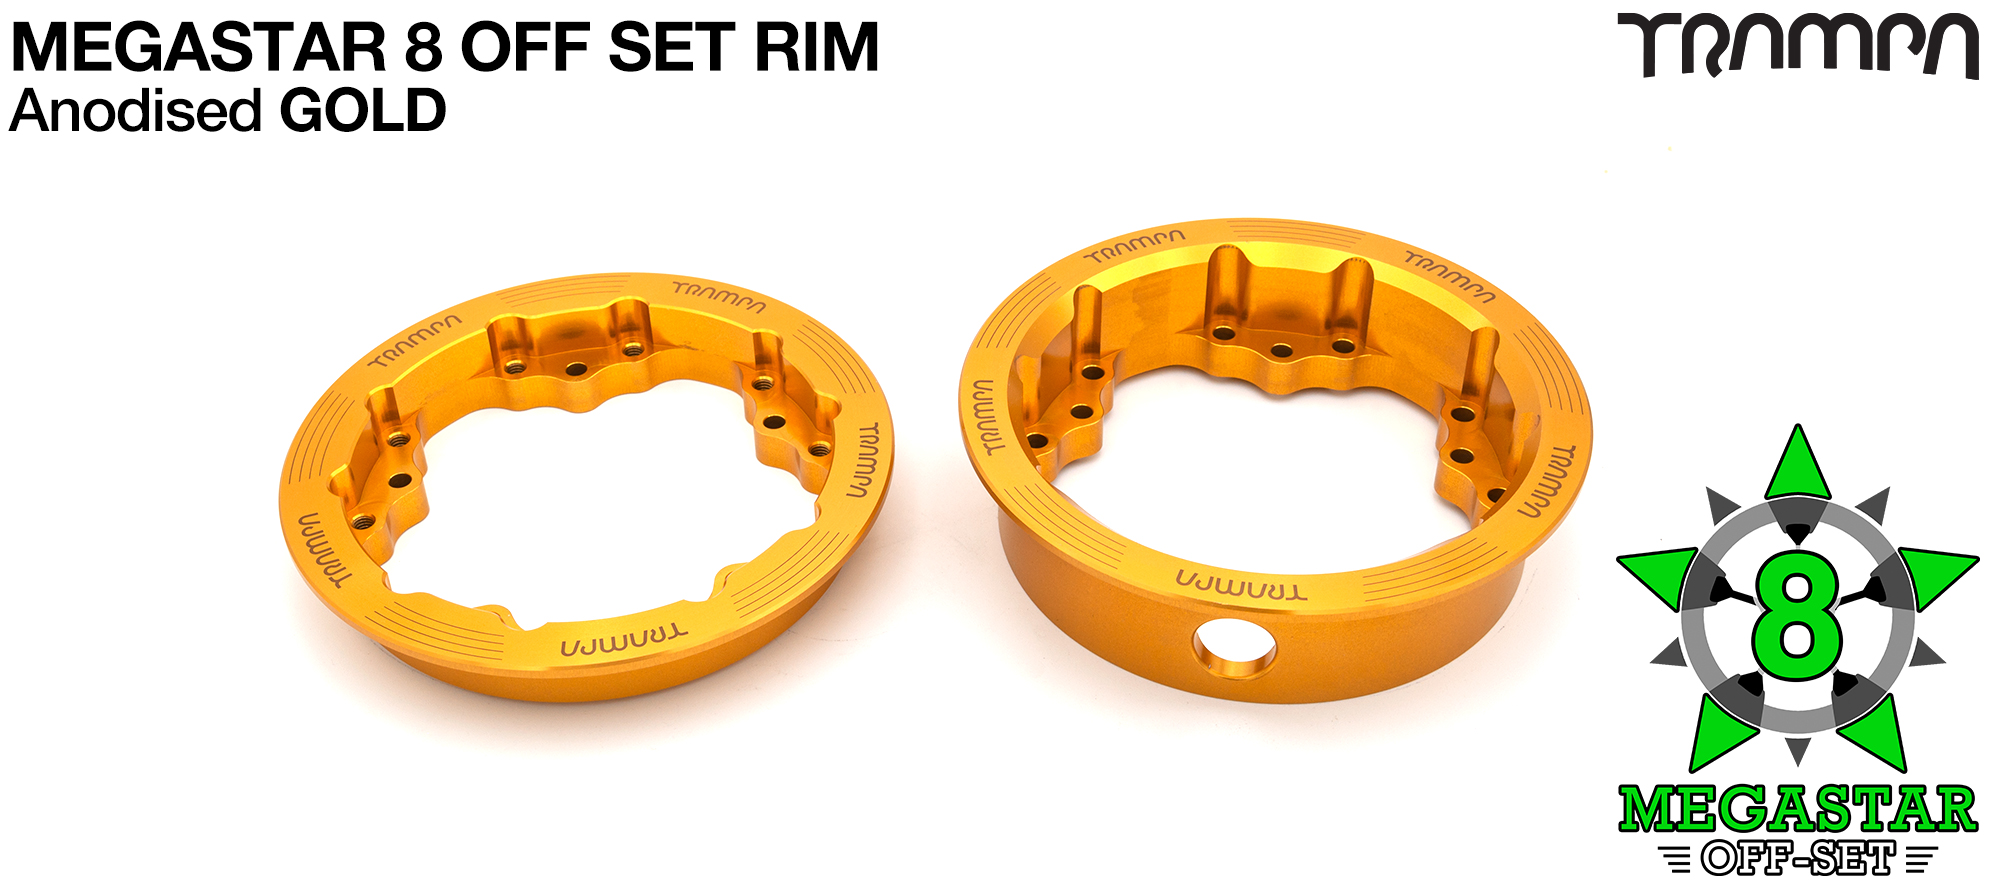 8 inch OFF-SET MEGASTAR Rims on the FRONT - GOLD